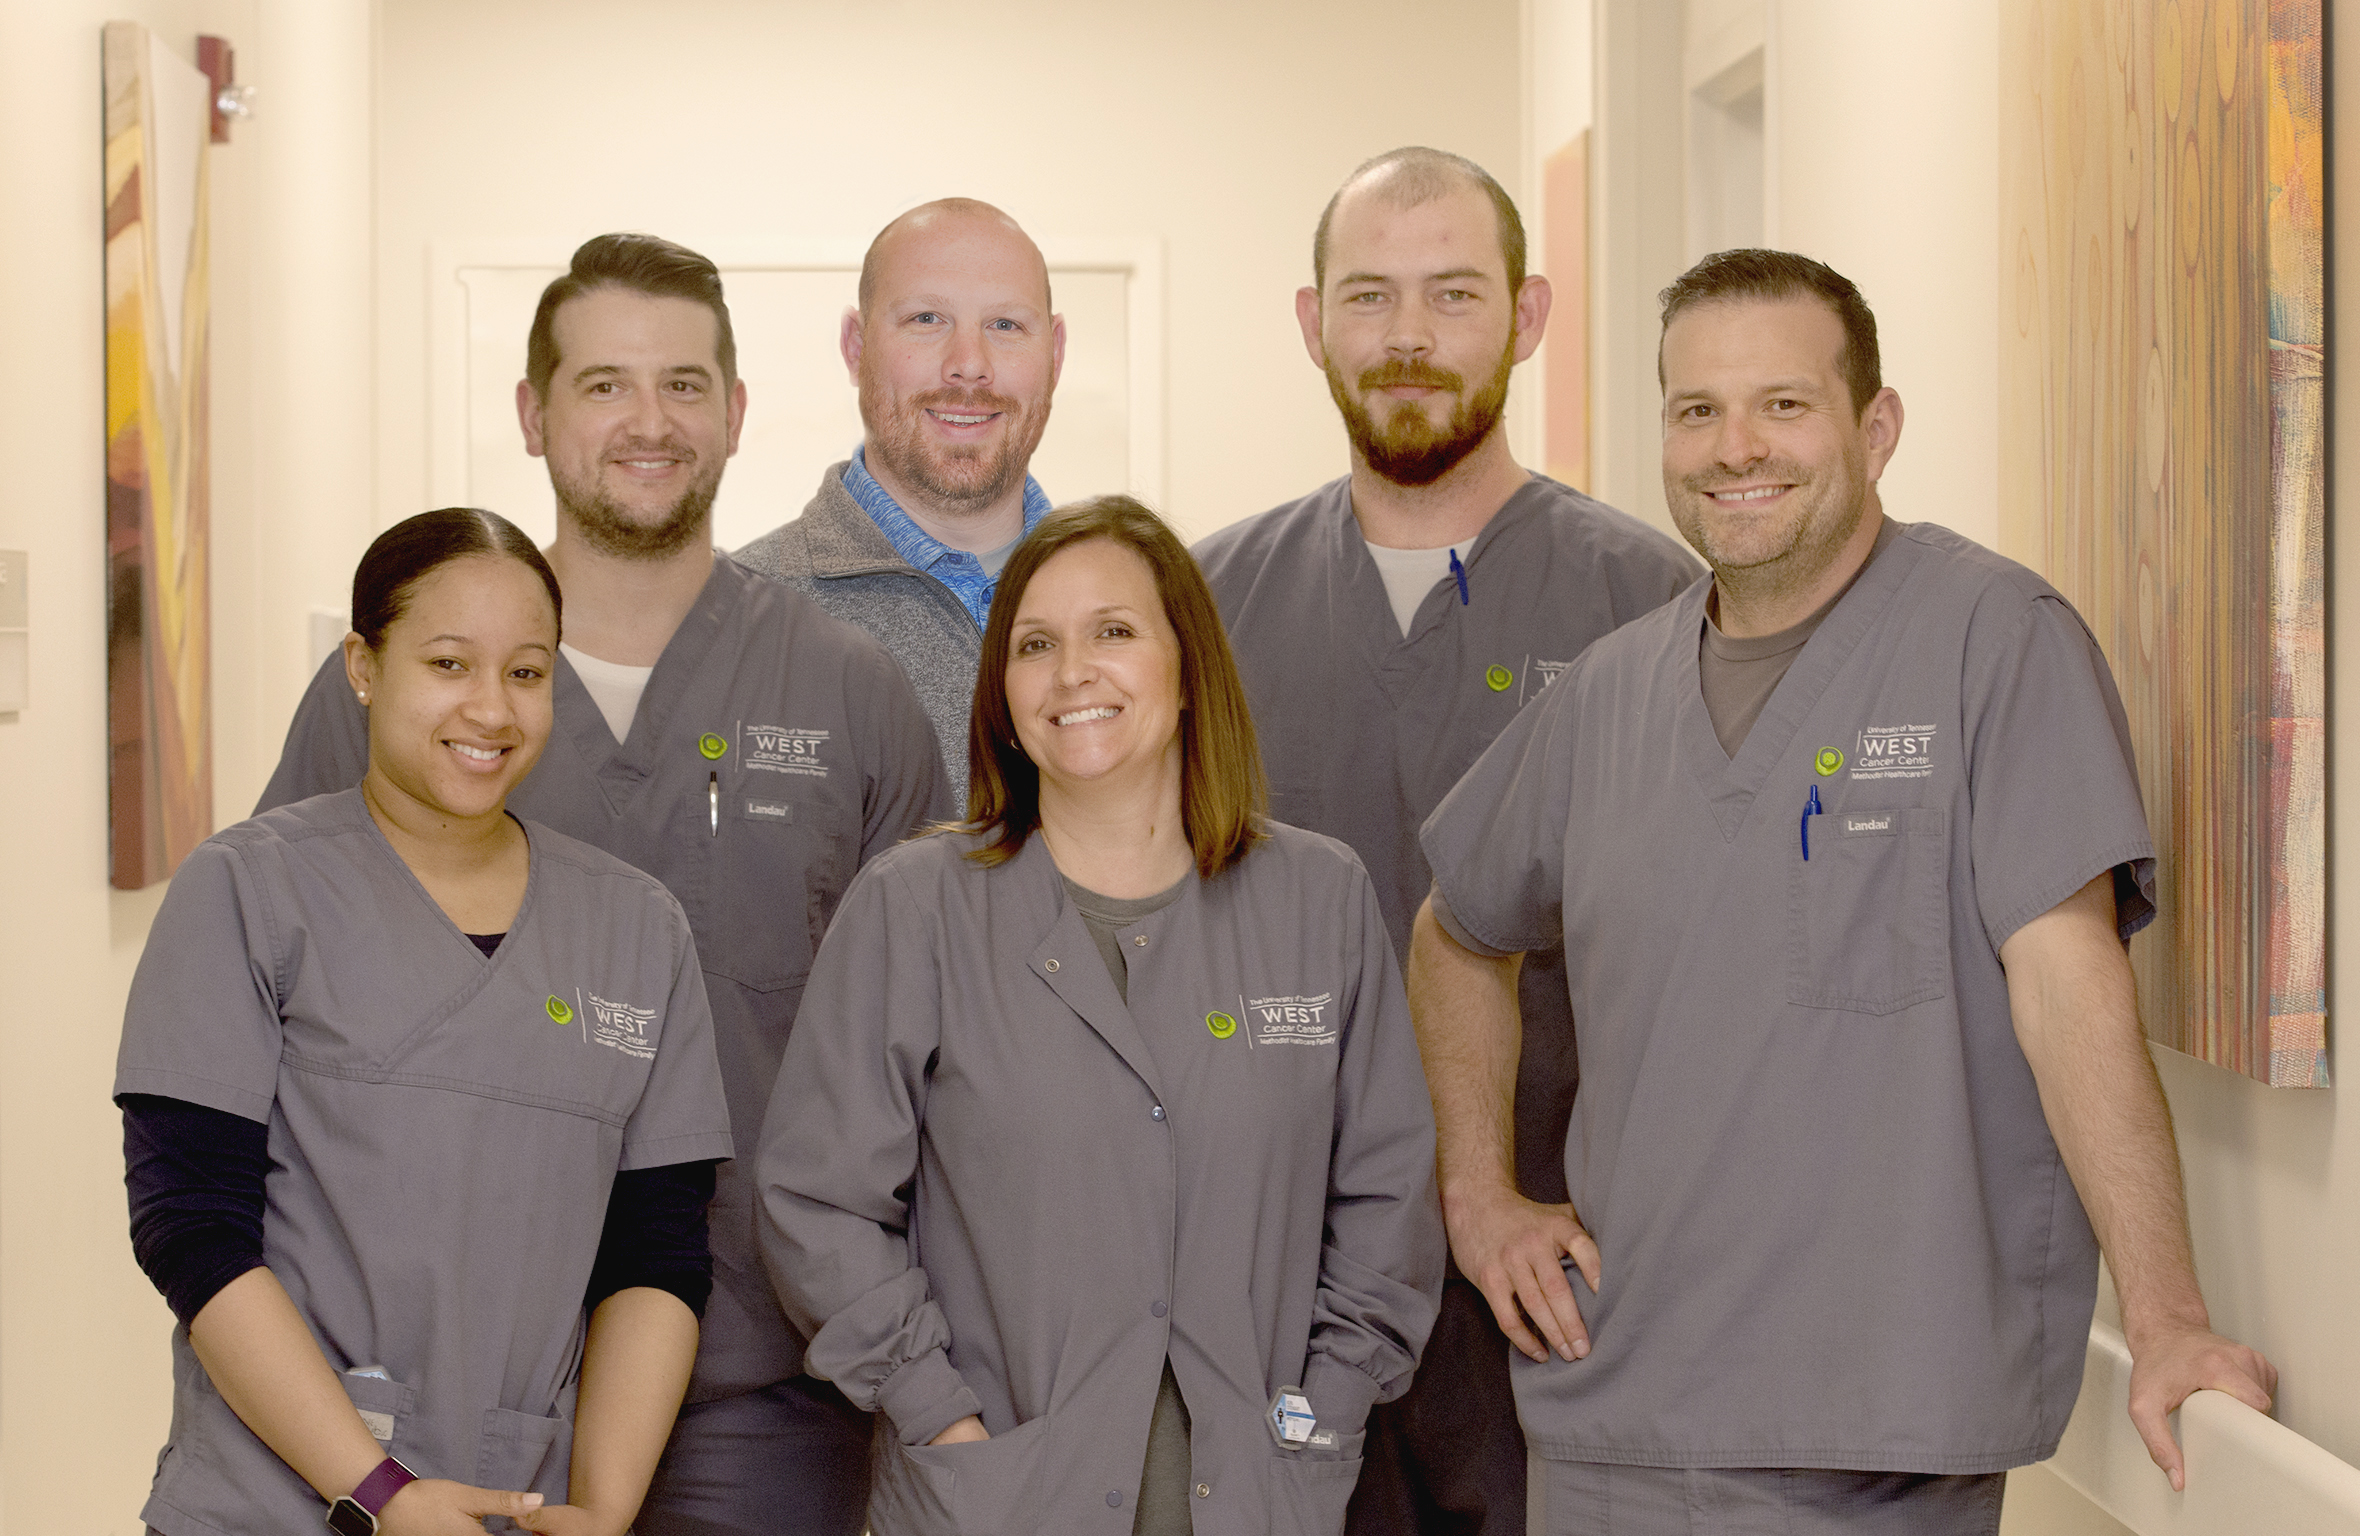 Interventional and Diagnostic Radiology - West Cancer Center